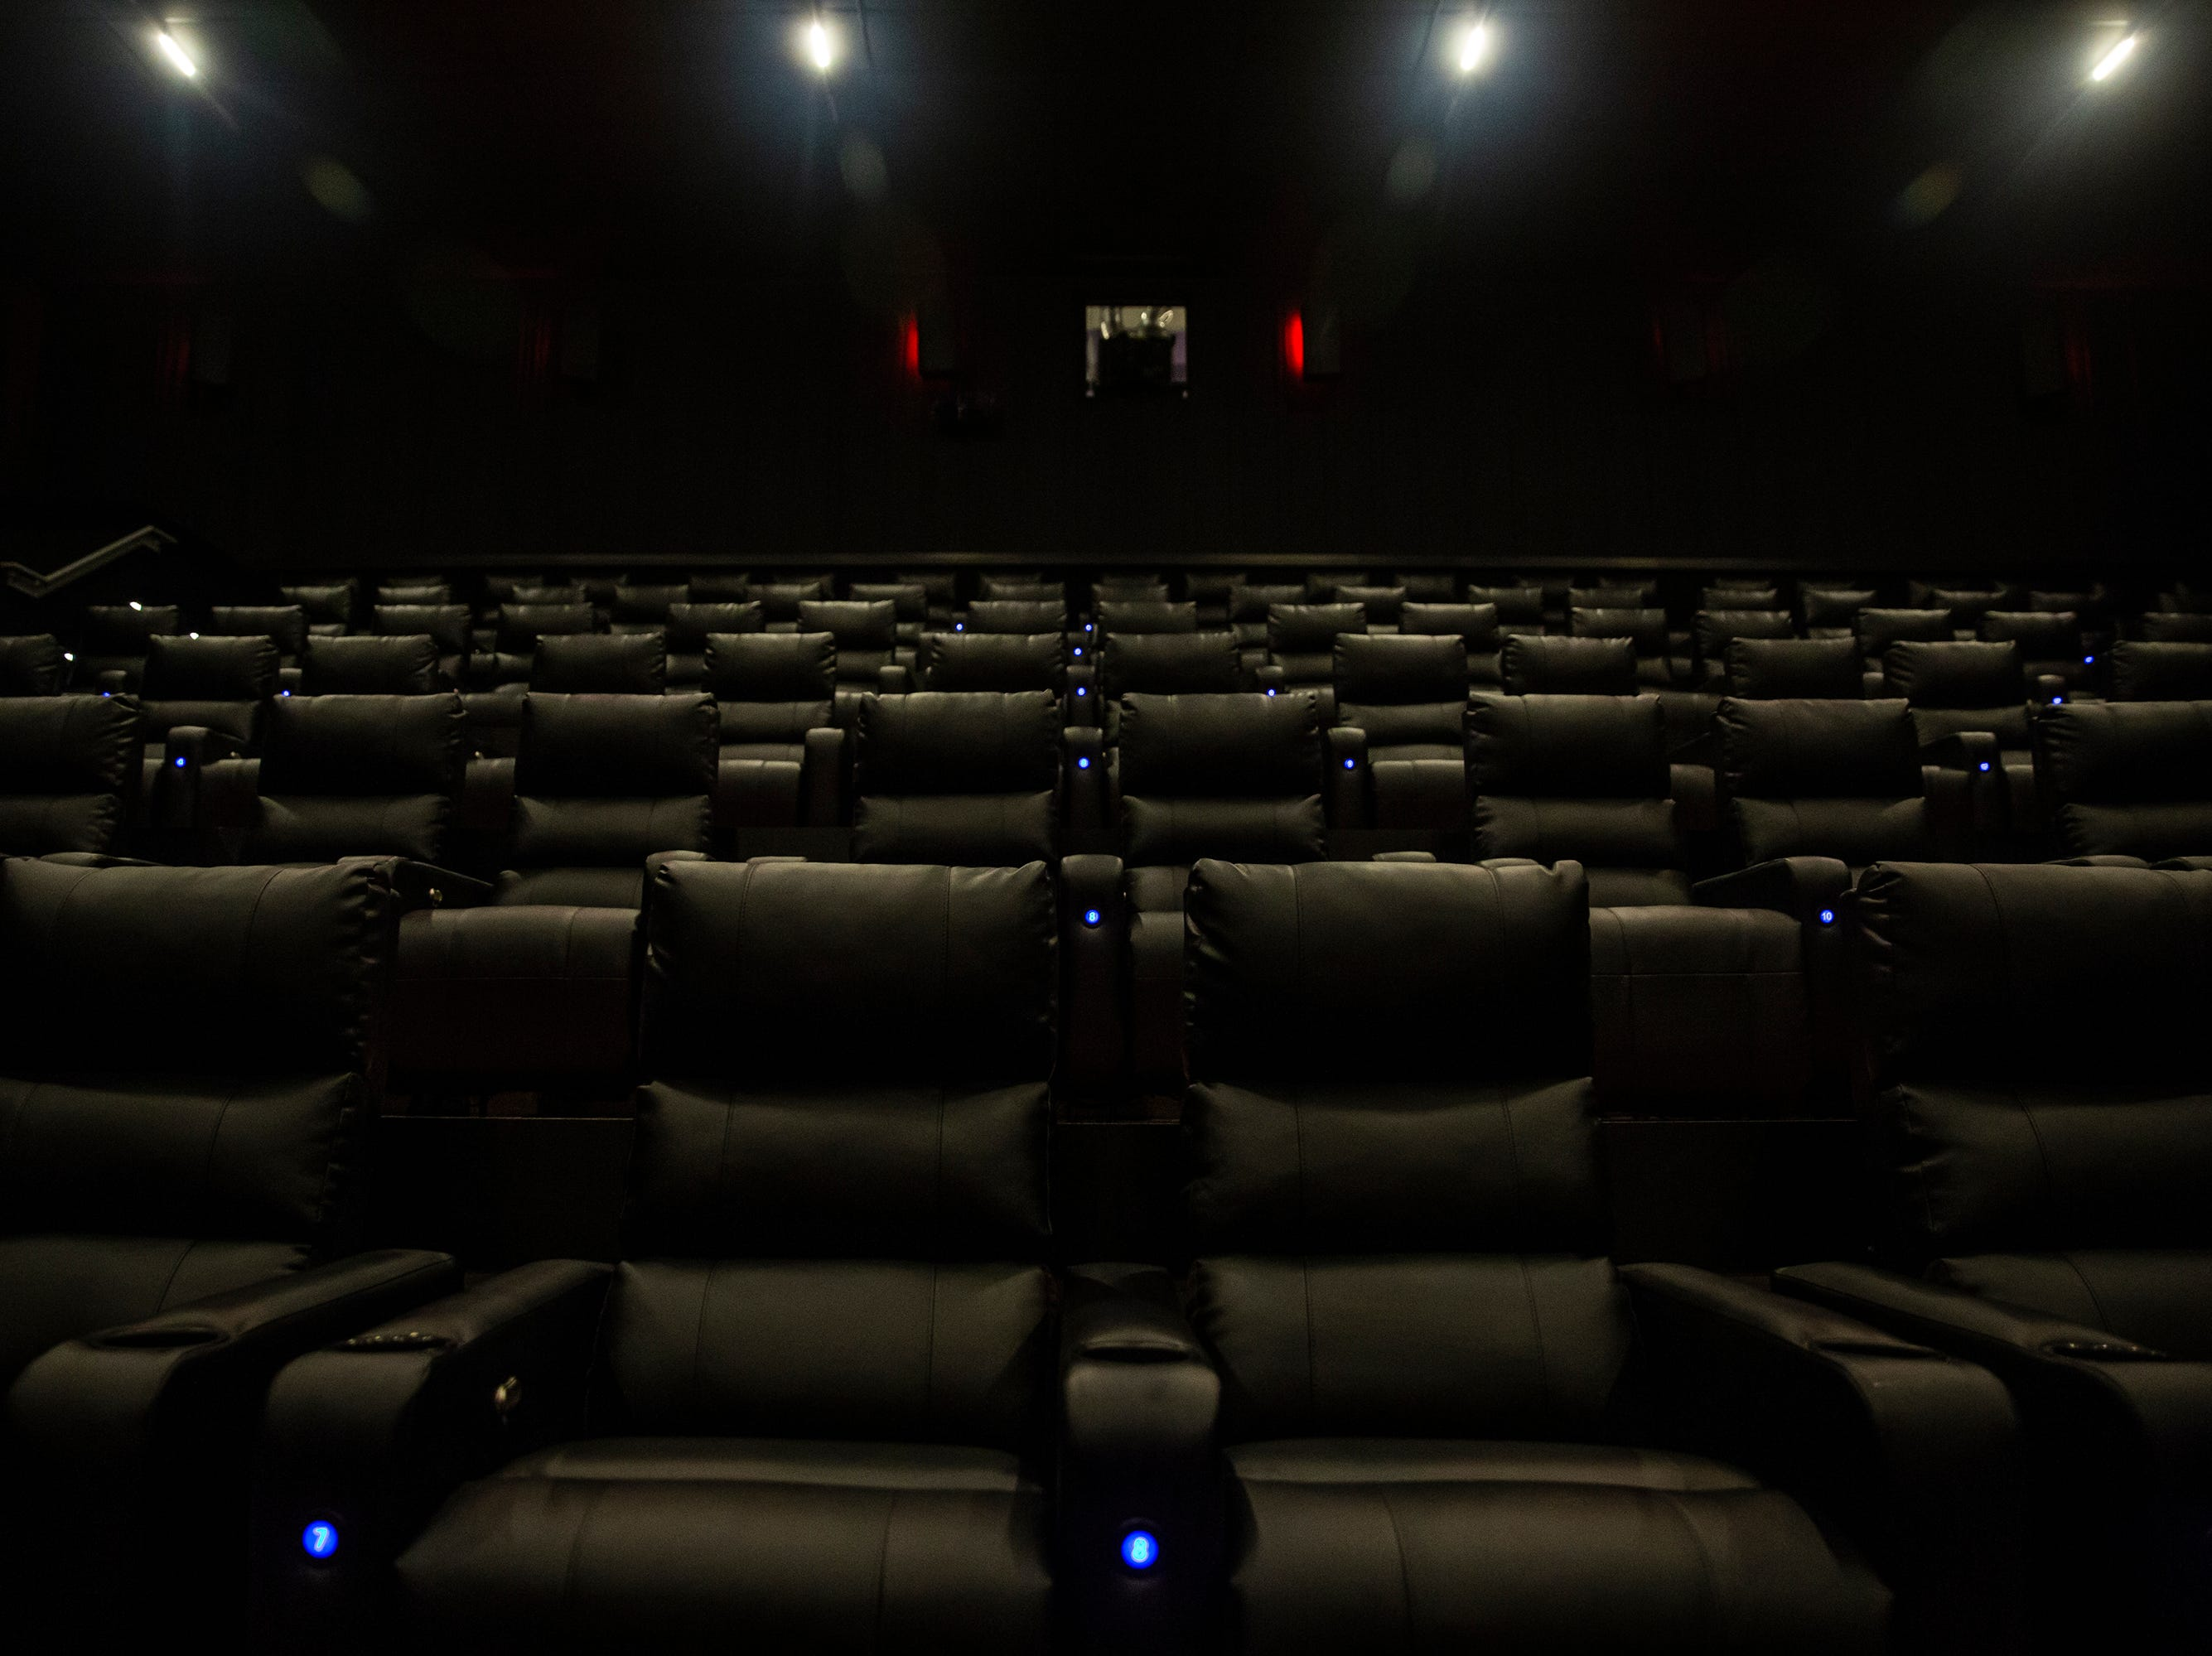 The two Grand Screens at B & B Ankeny 12 & B-Roll Bowling each seat more than 200 people and feature programable dive lighting, immersive surround sound and the largest movie screens in the country, on Sunday, Dec. 9, 2018, in Ankeny.